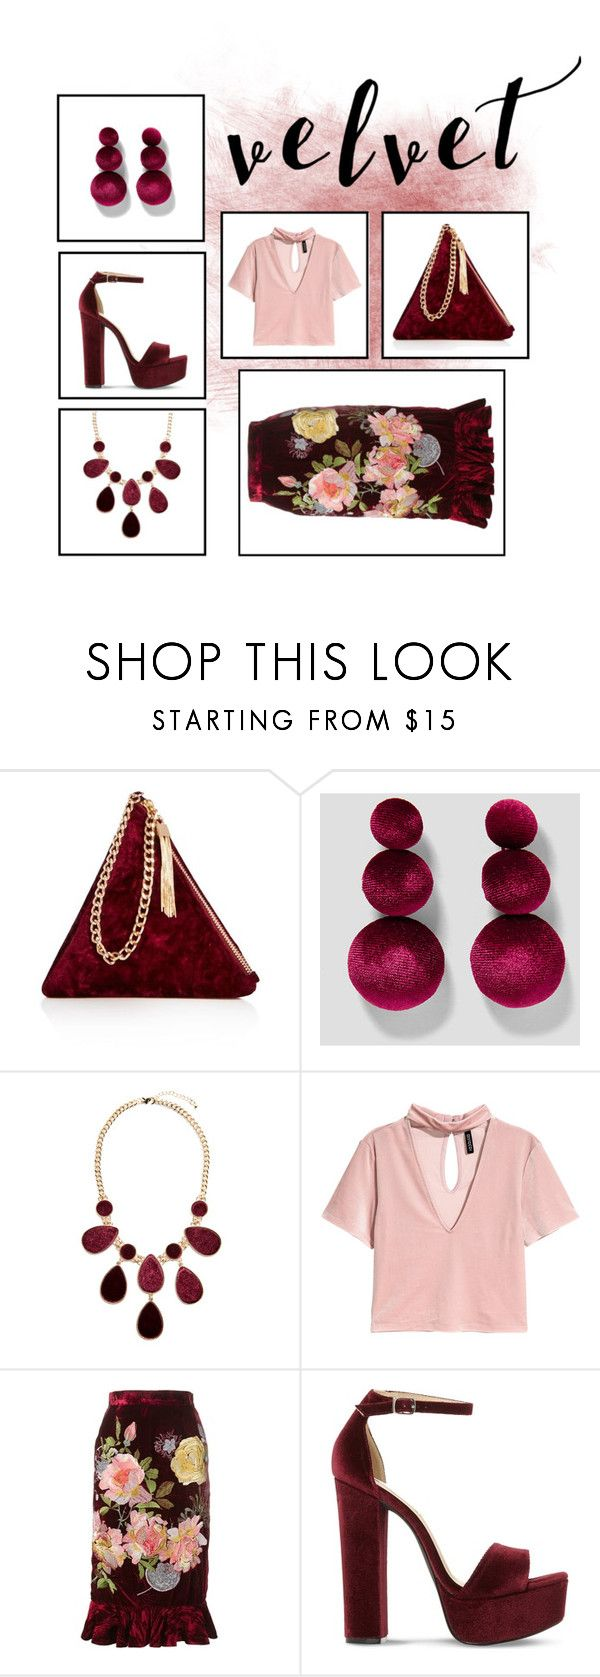 """{velvet}"" by calliebethd ❤ liked on Polyvore featuring Street Level, GUESS by Marciano, Alice Archer, Steve Madden, Fall, trending and velvet"